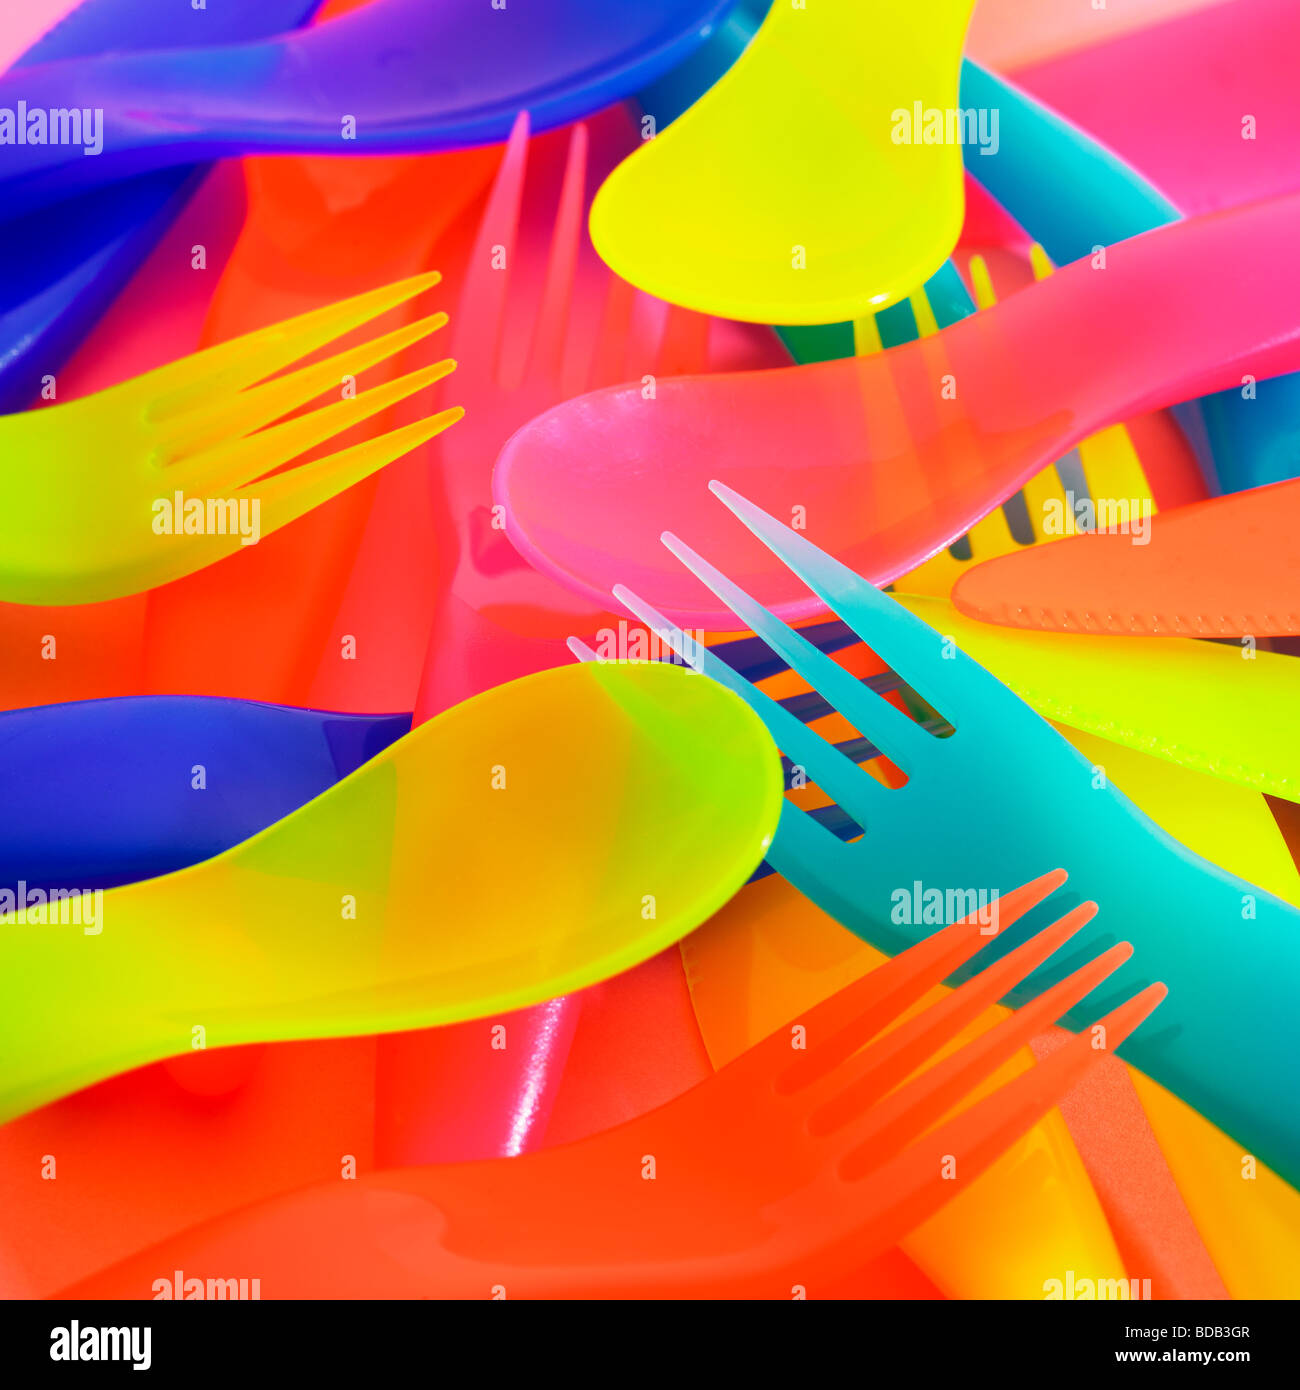 Brightly coloured plastic cutlery. - Stock Image